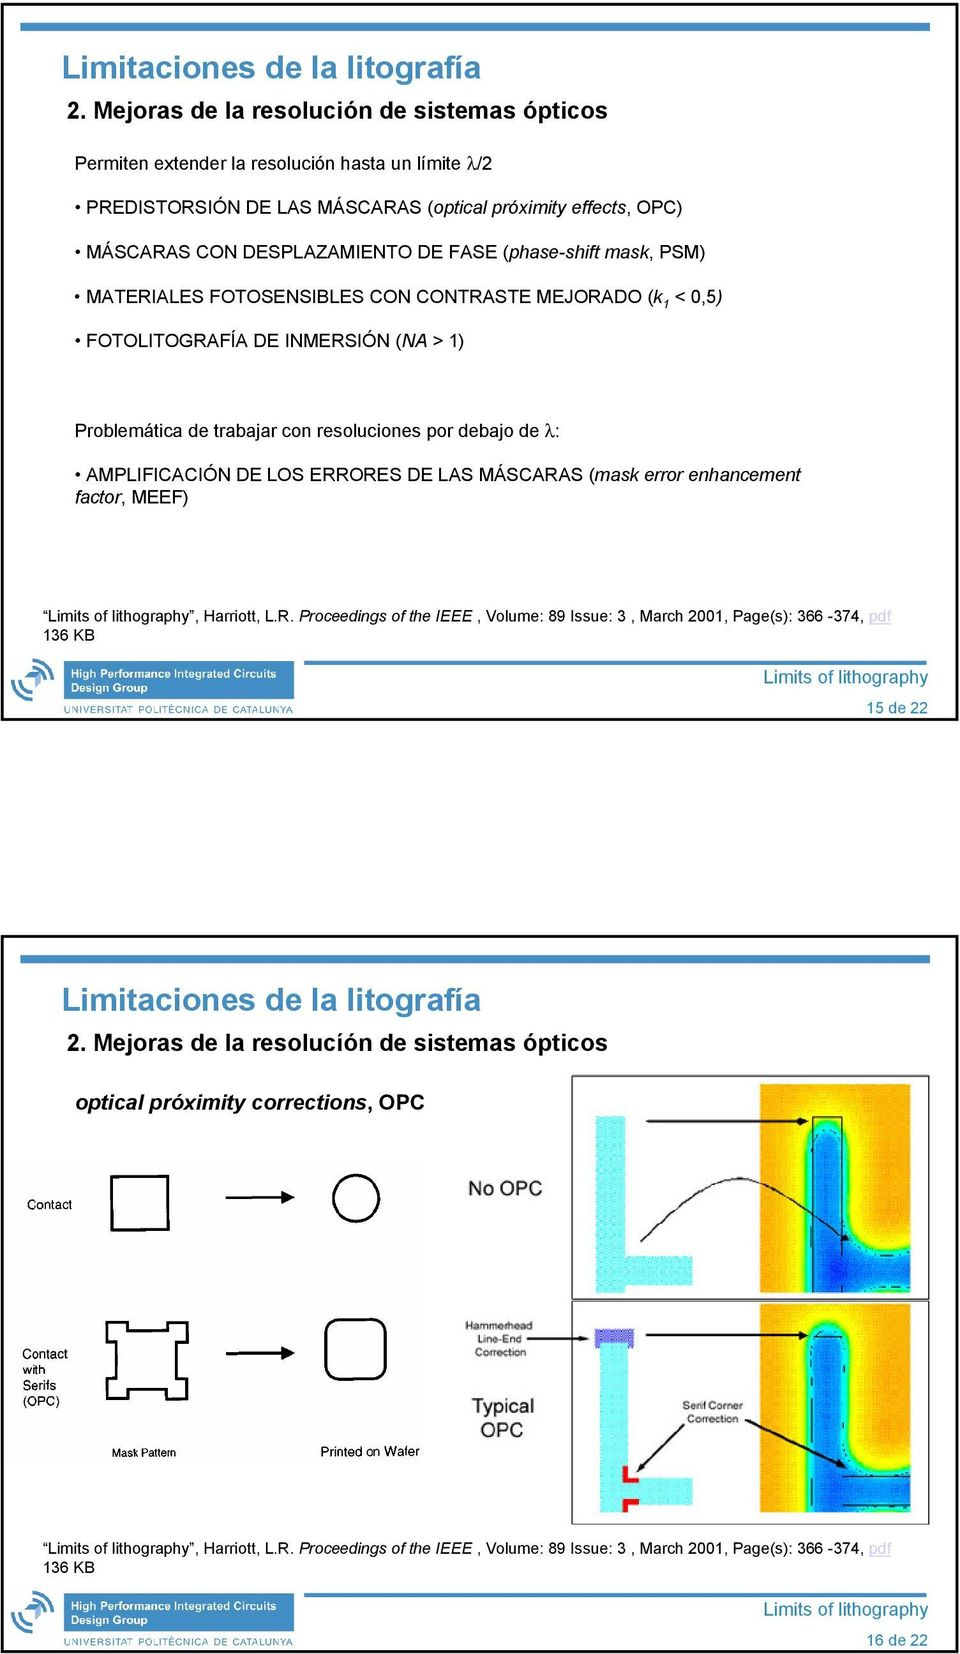 AMPLIFICACIÓN DE LOS ERRORES DE LAS MÁSCARAS (mask error enhancement factor, MEEF), Harriott, L.R. Proceedings of the IEEE, Volume: 89 Issue: 3, March 2001, Page(s): 366-374, pdf 136 KB 15 de 22 2.